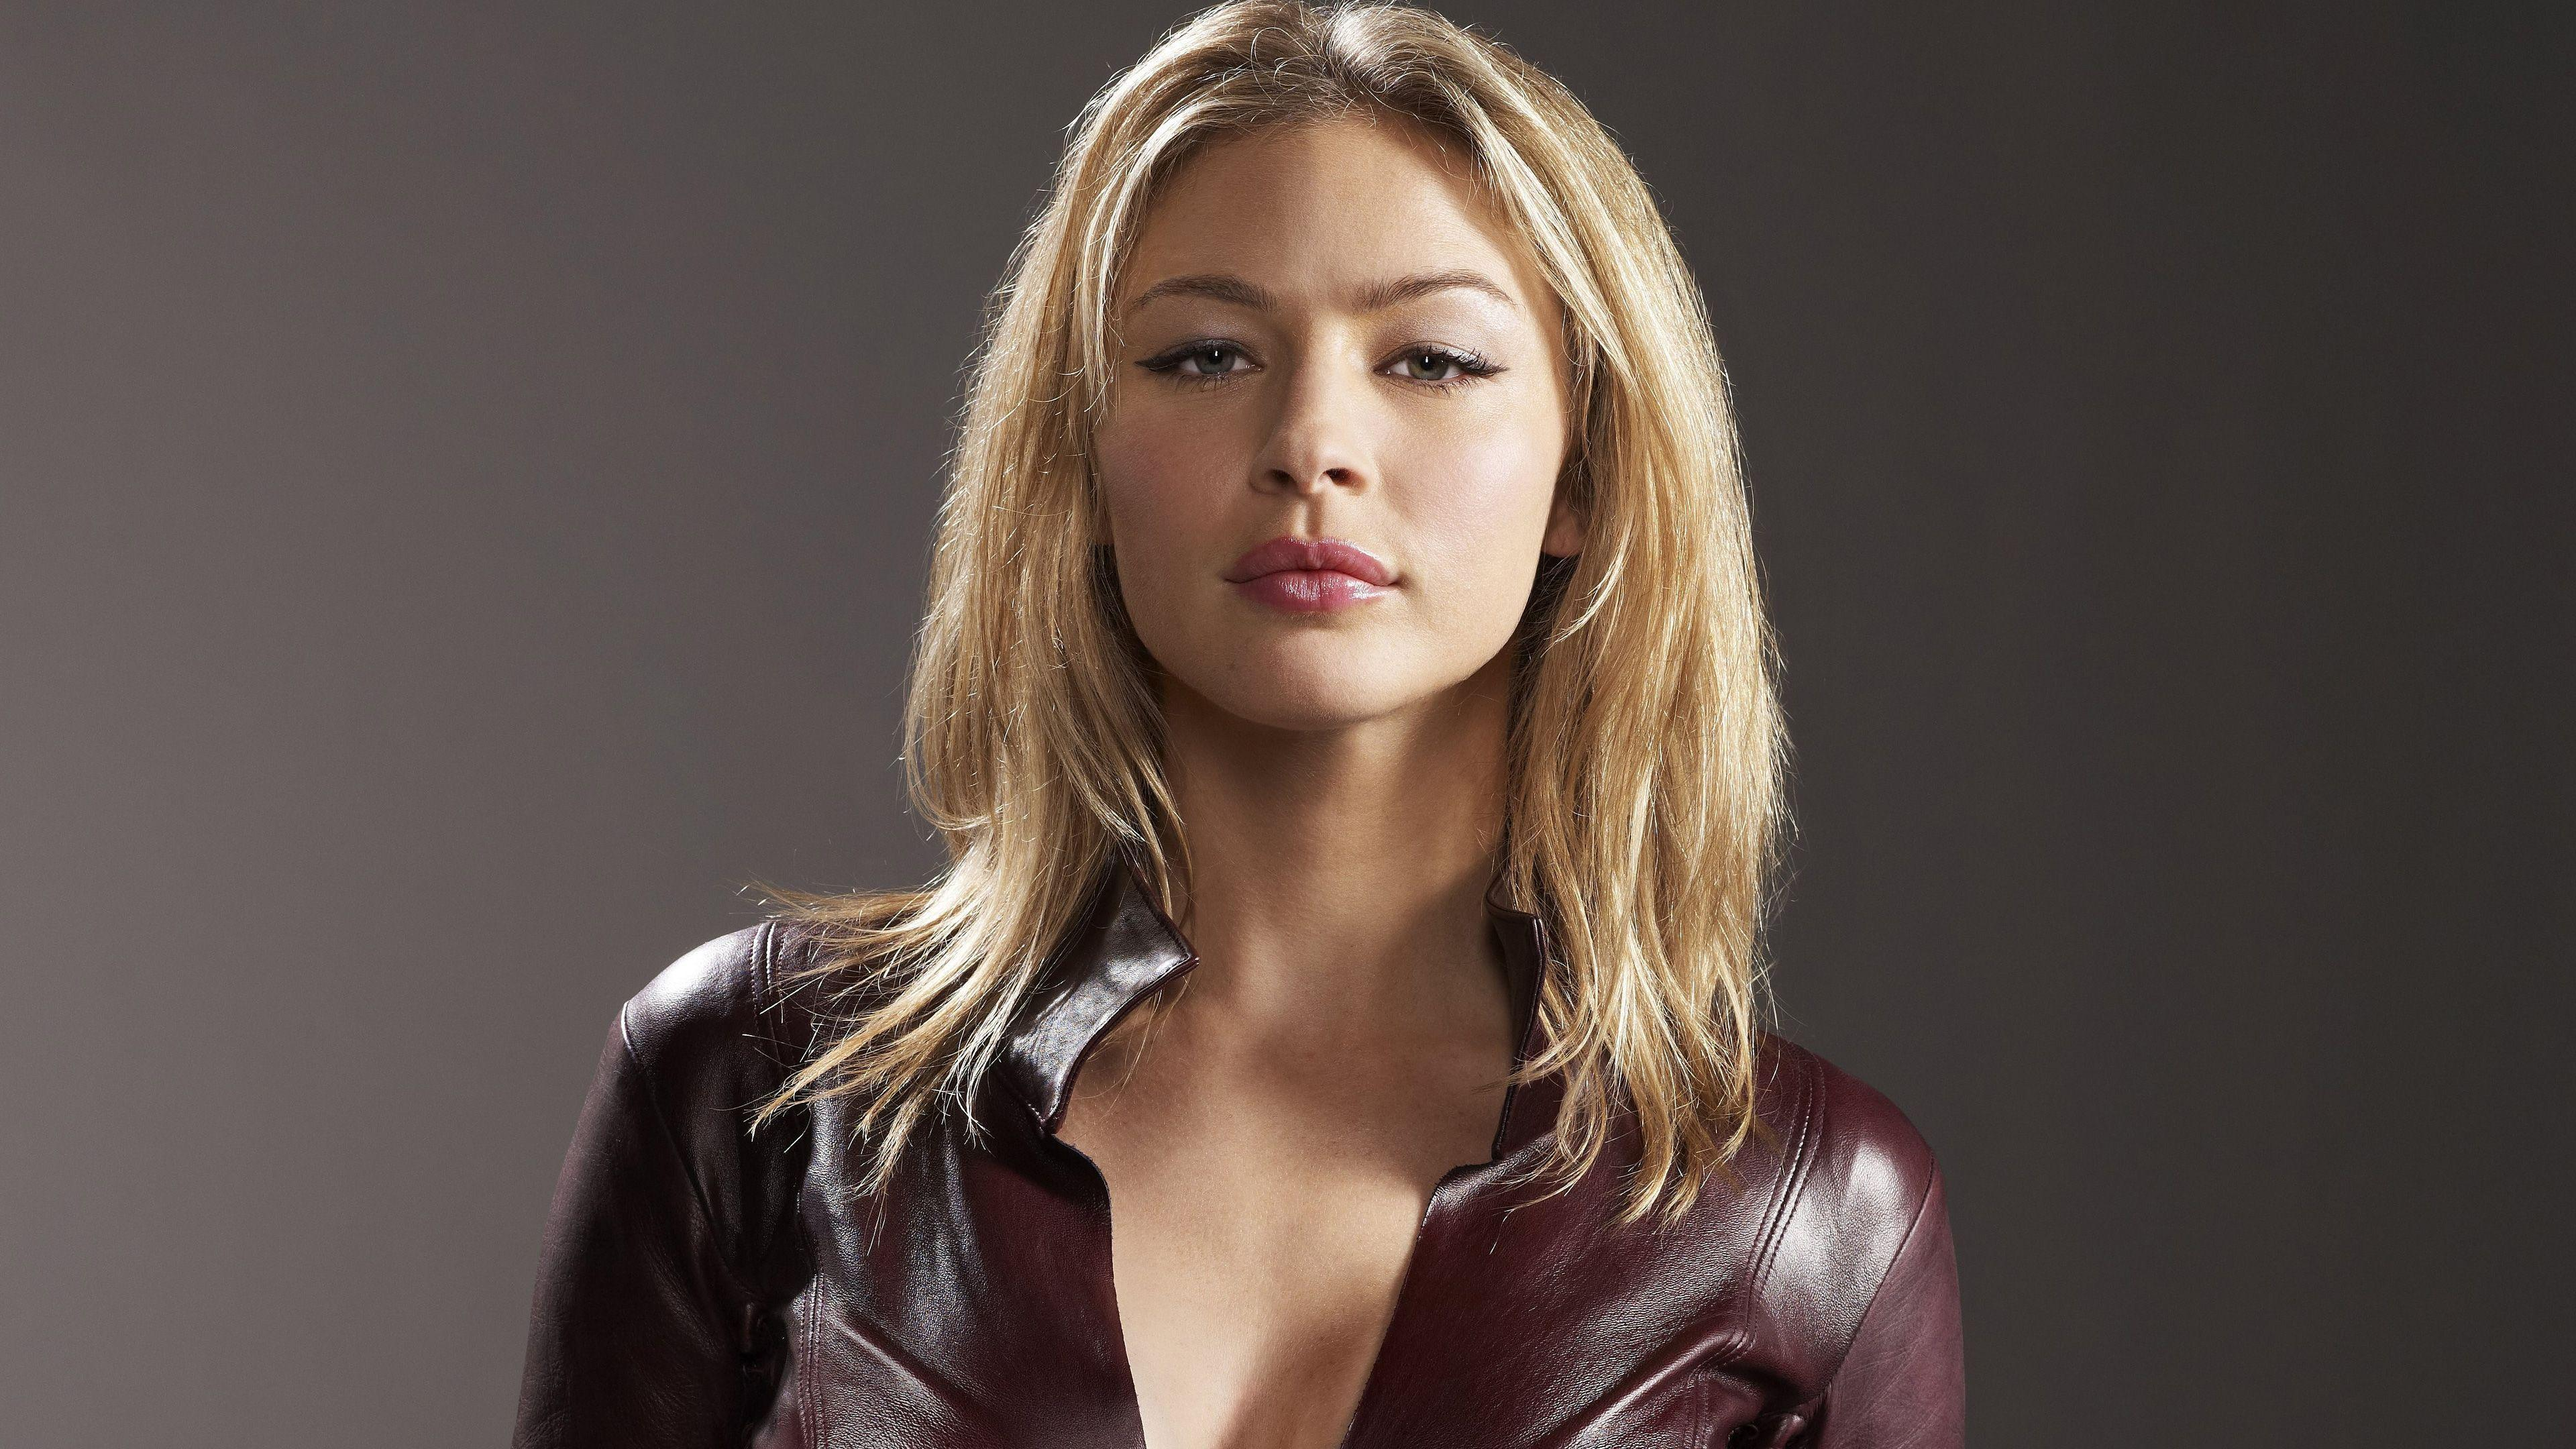 Tabrett Bethell nudes (48 photos), Sexy, Is a cute, Selfie, braless 2006